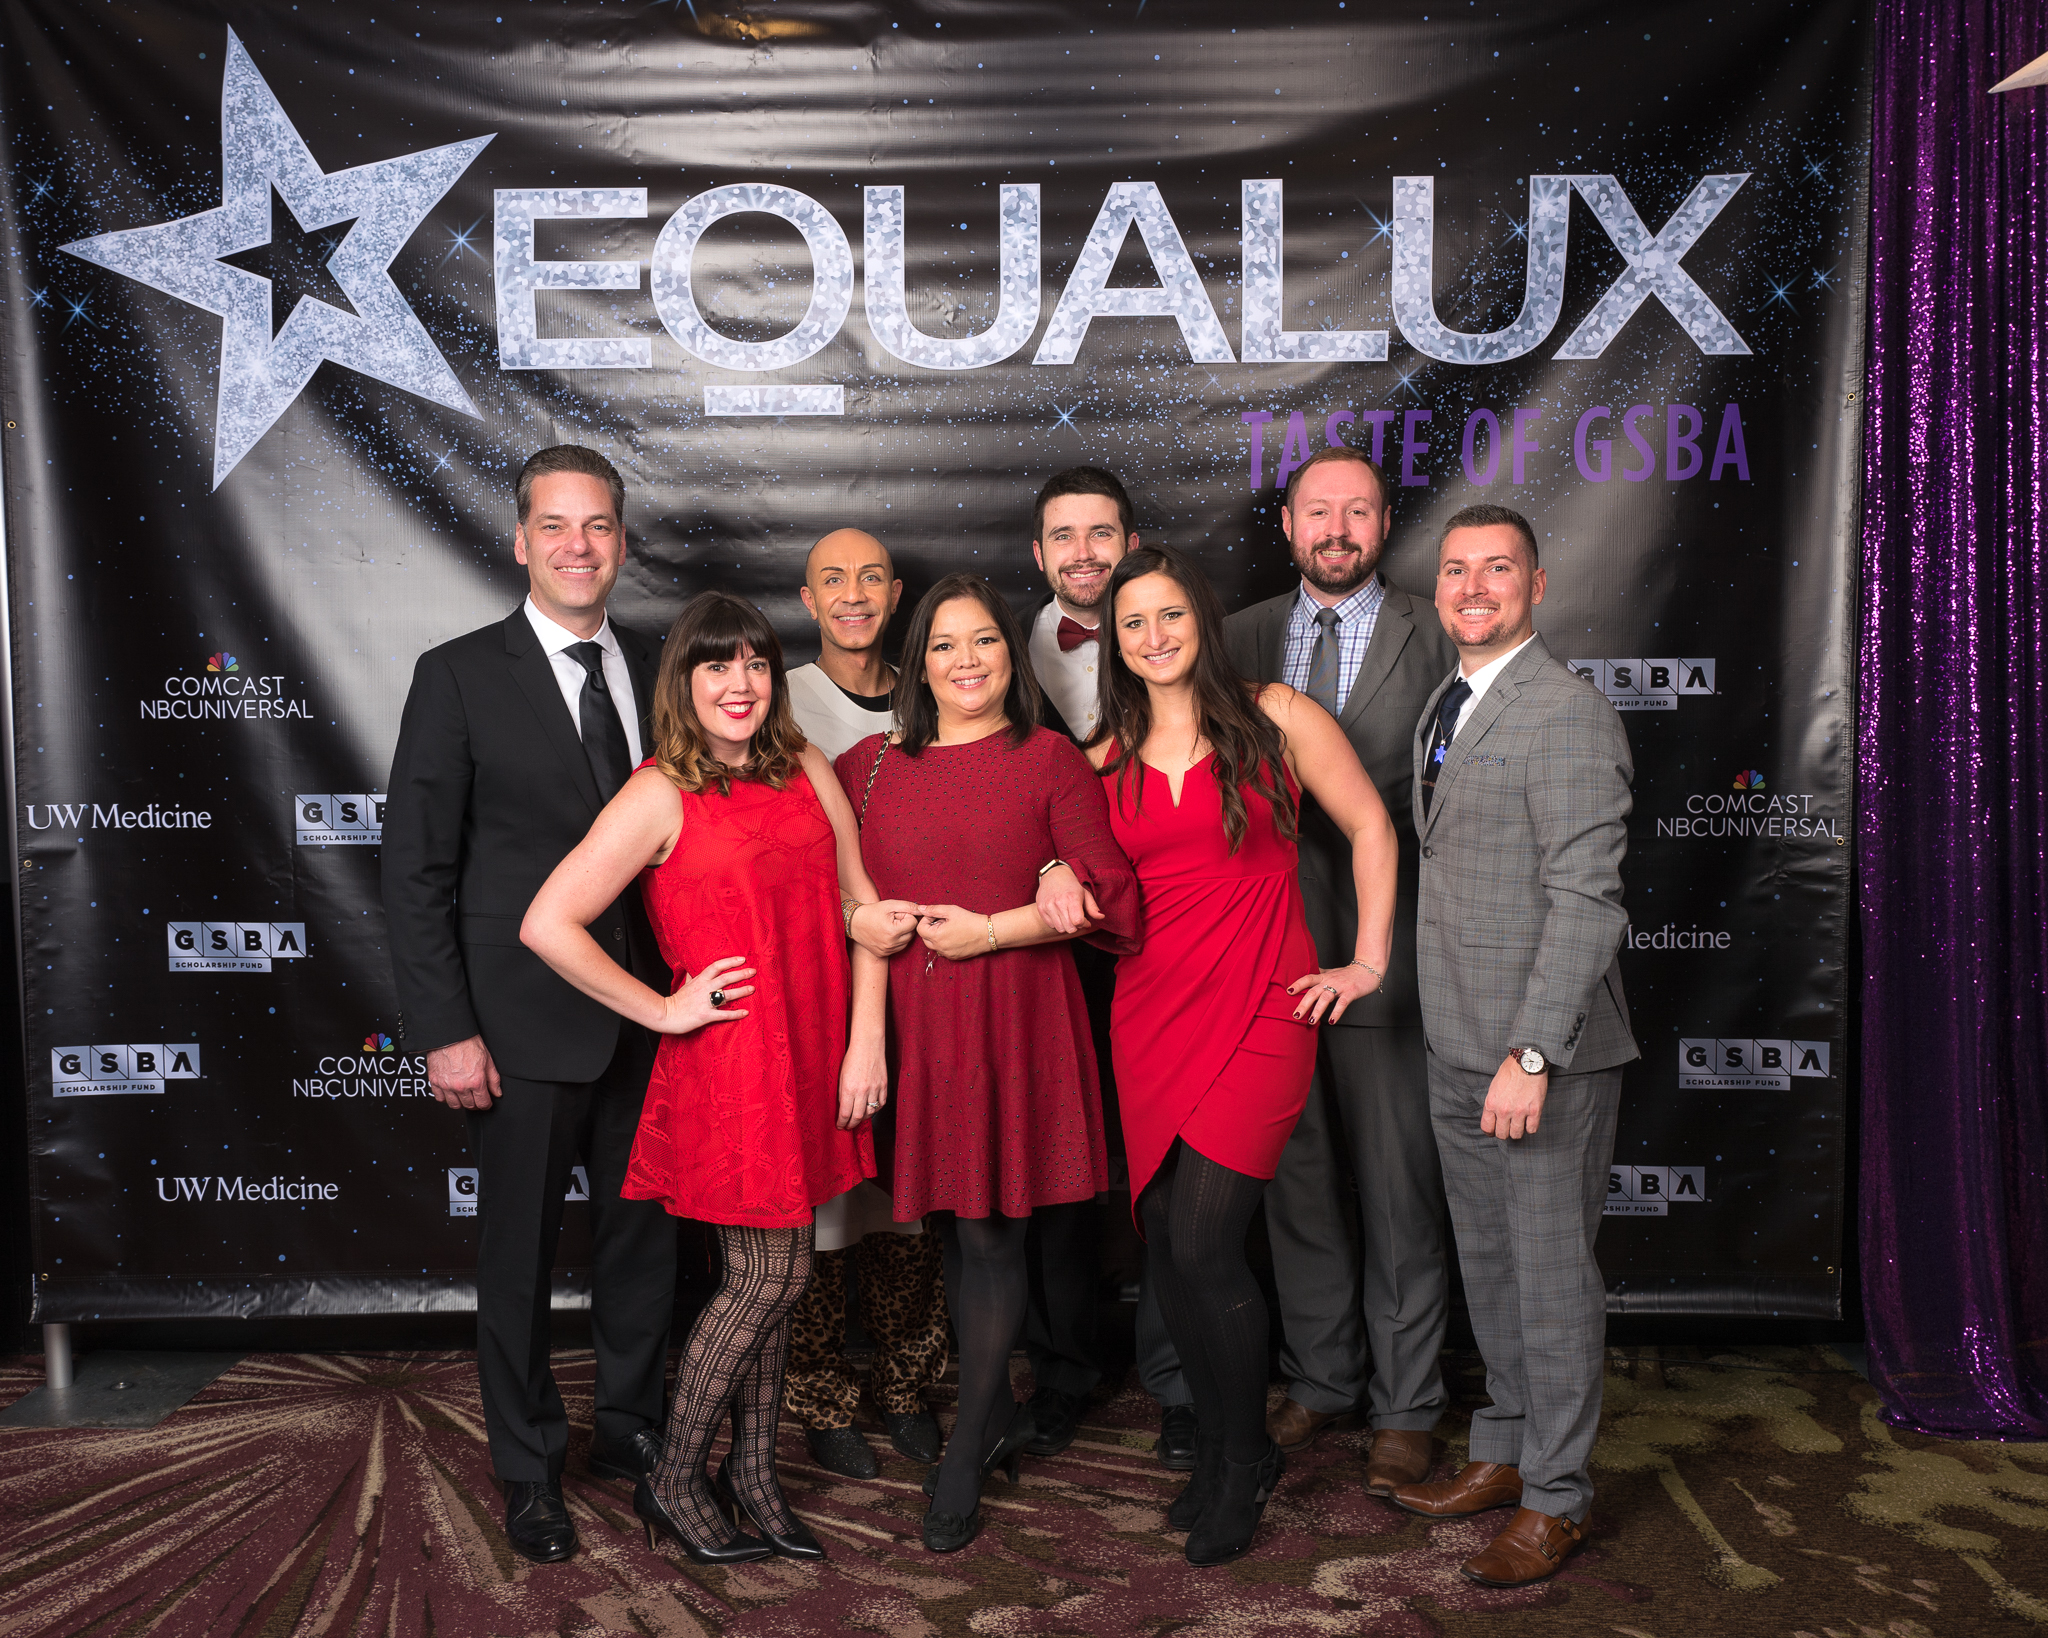 111718_GSBA EQUALUX at The Westin Seattle (Credit- Nate Gowdy)-86.jpg